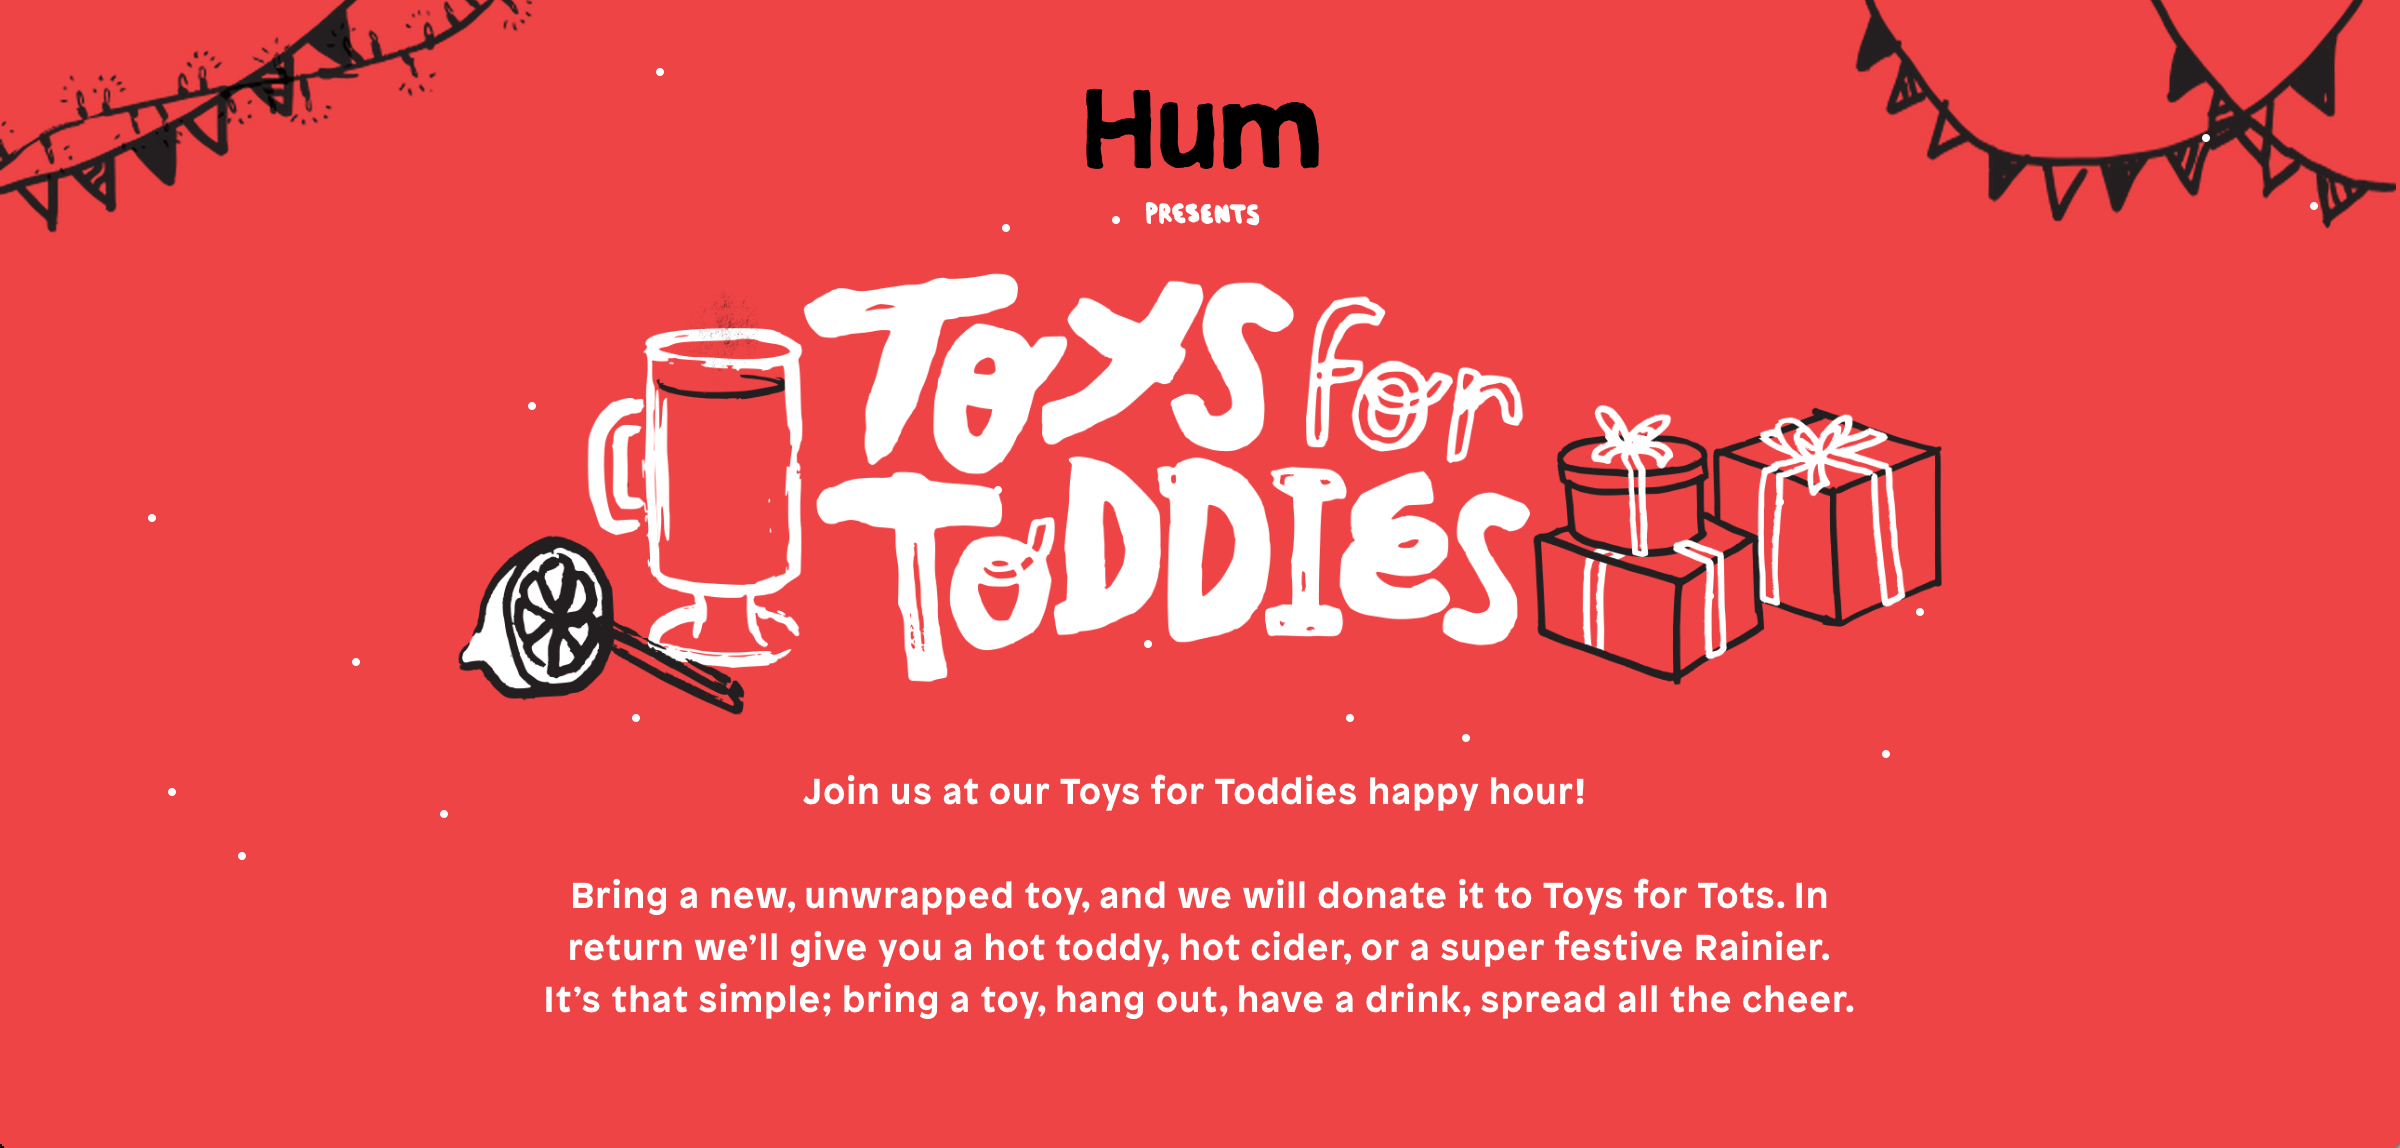 Toys for Toddies